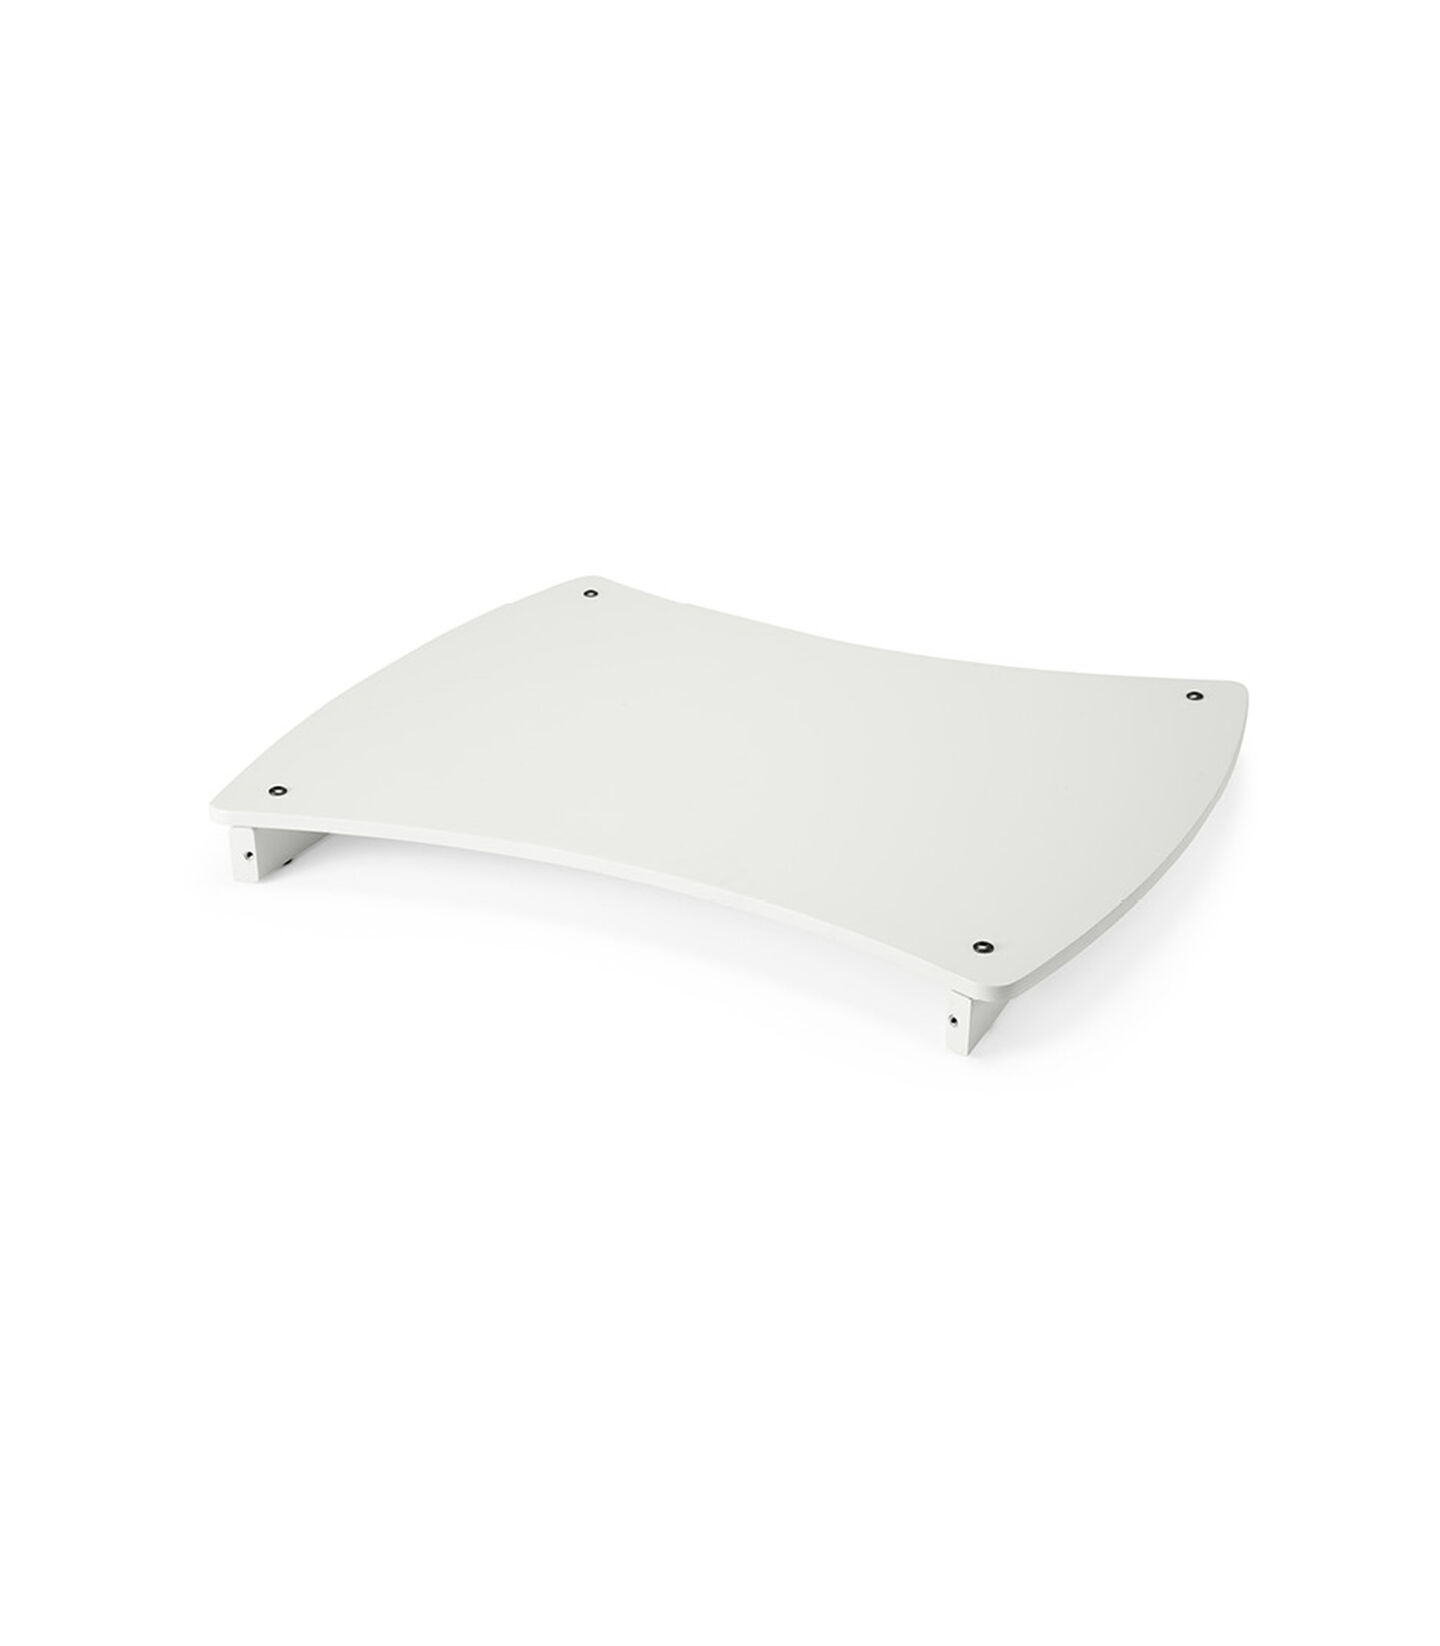 Stokke® Care™ Obersten Regal Complete White, White, mainview view 2